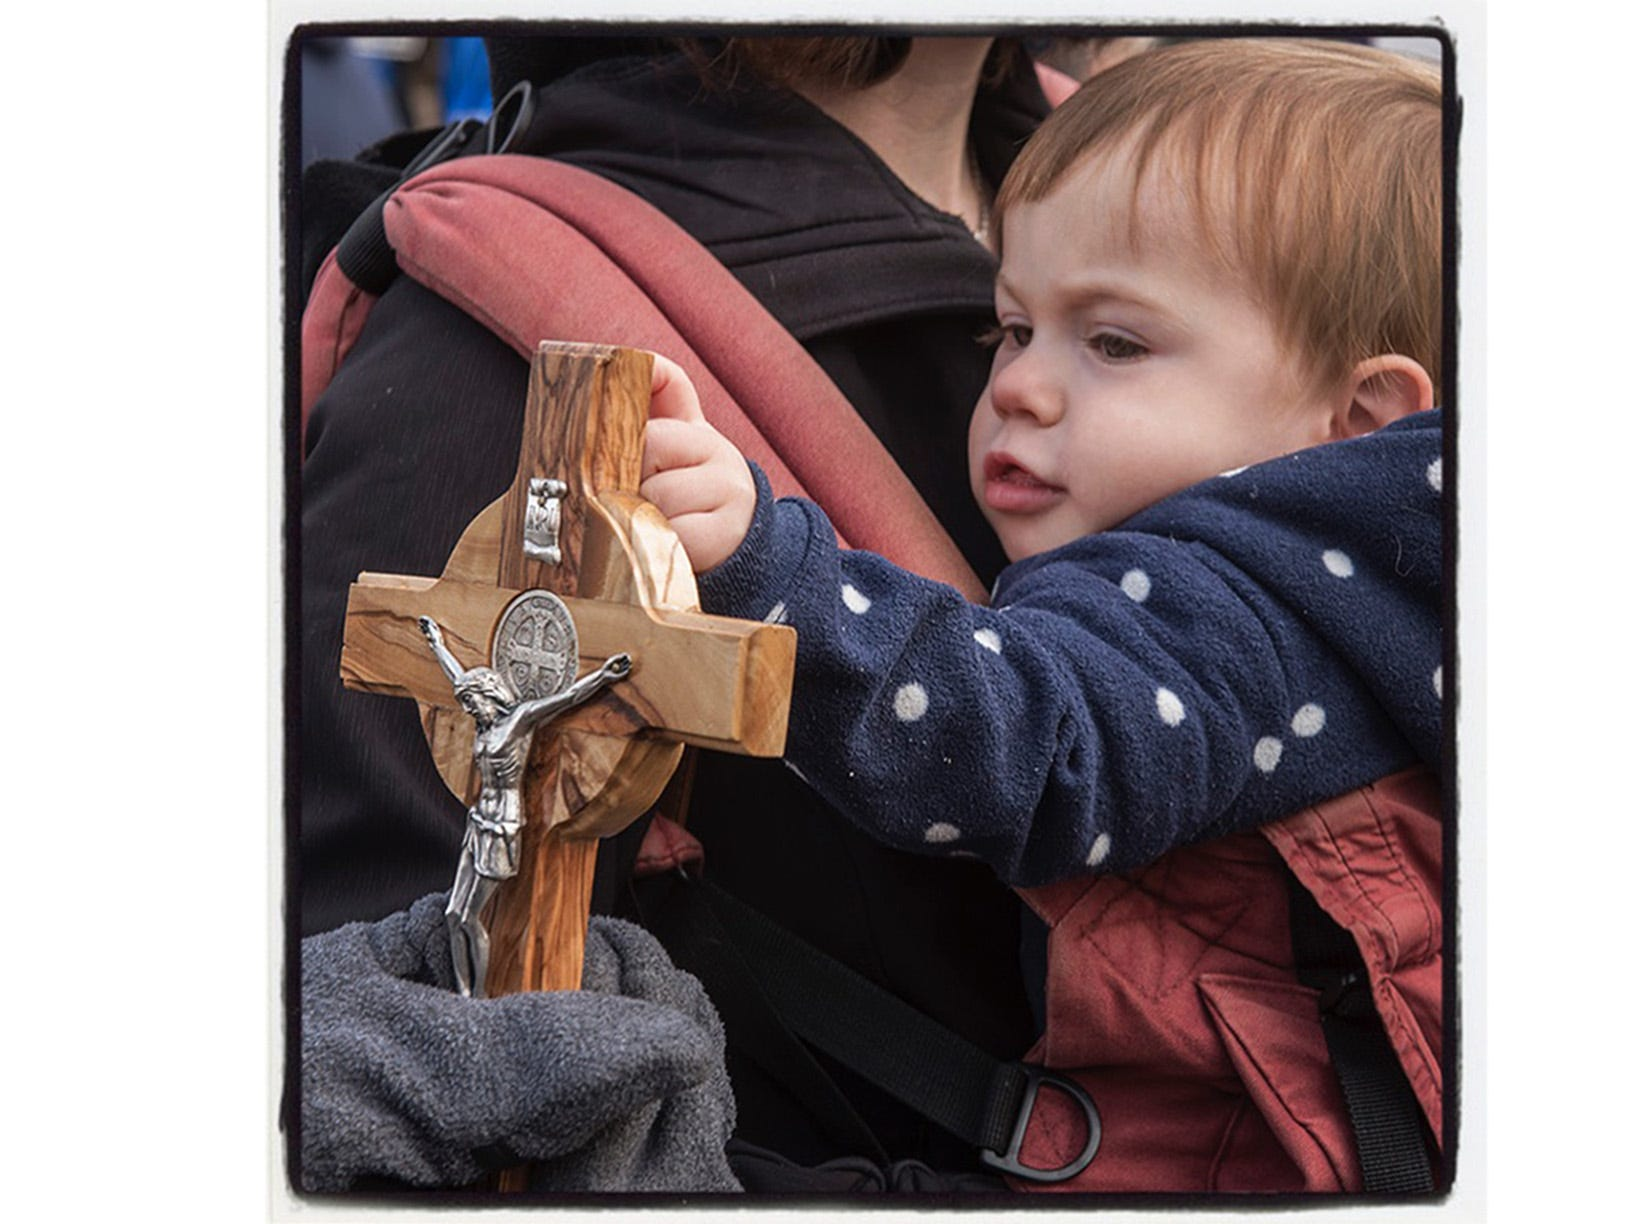 One year old Eamon Kovacs touches a crucifix held by an Planned Parenthood clinic protester. Eamon is held by his mother, Elizabeth Kovacs. Livonia, Michigan.